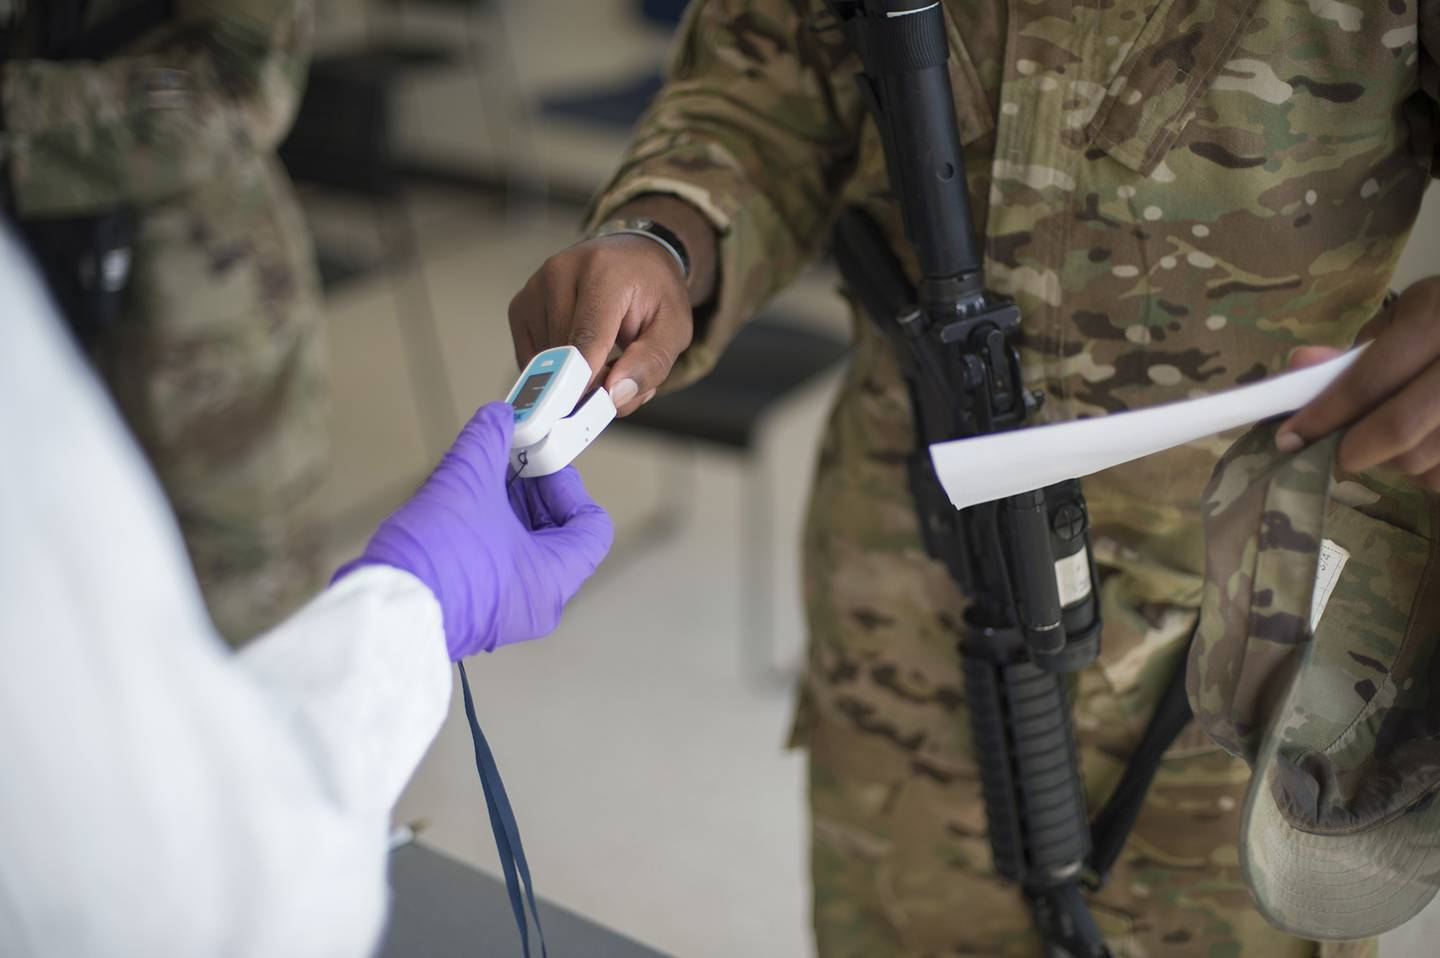 Soldiers attached to the Texas Army National Guard's 36th Infantry Division and 272th Engineer Company receive a COVID-19 IgG, IgM antigen test at Camp Swift in Bastrop, Texas, on June 9, 2020.